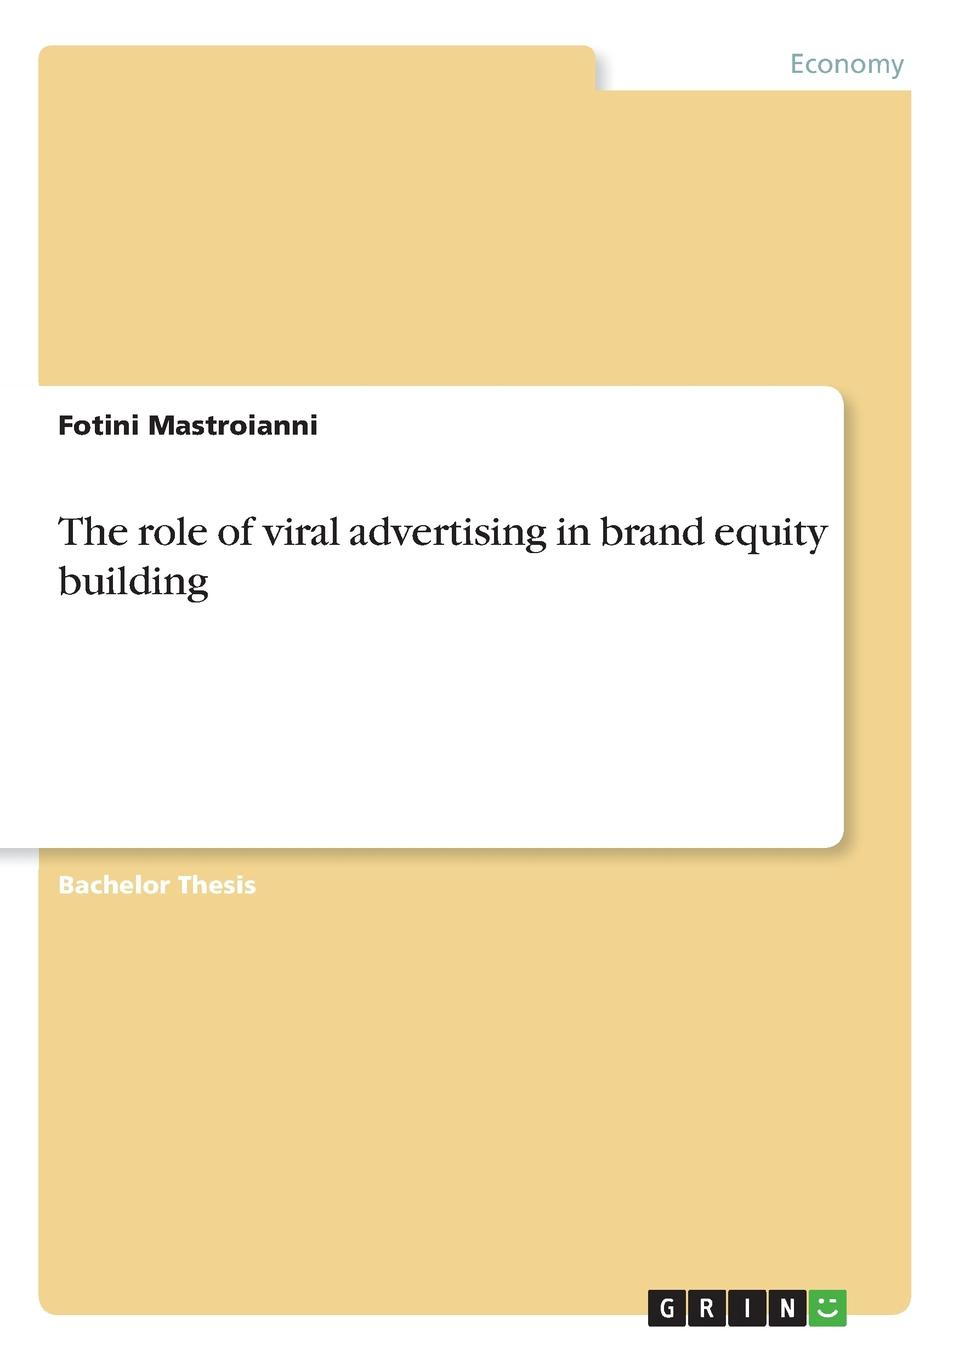 цена на Fotini Mastroianni The role of viral advertising in brand equity building